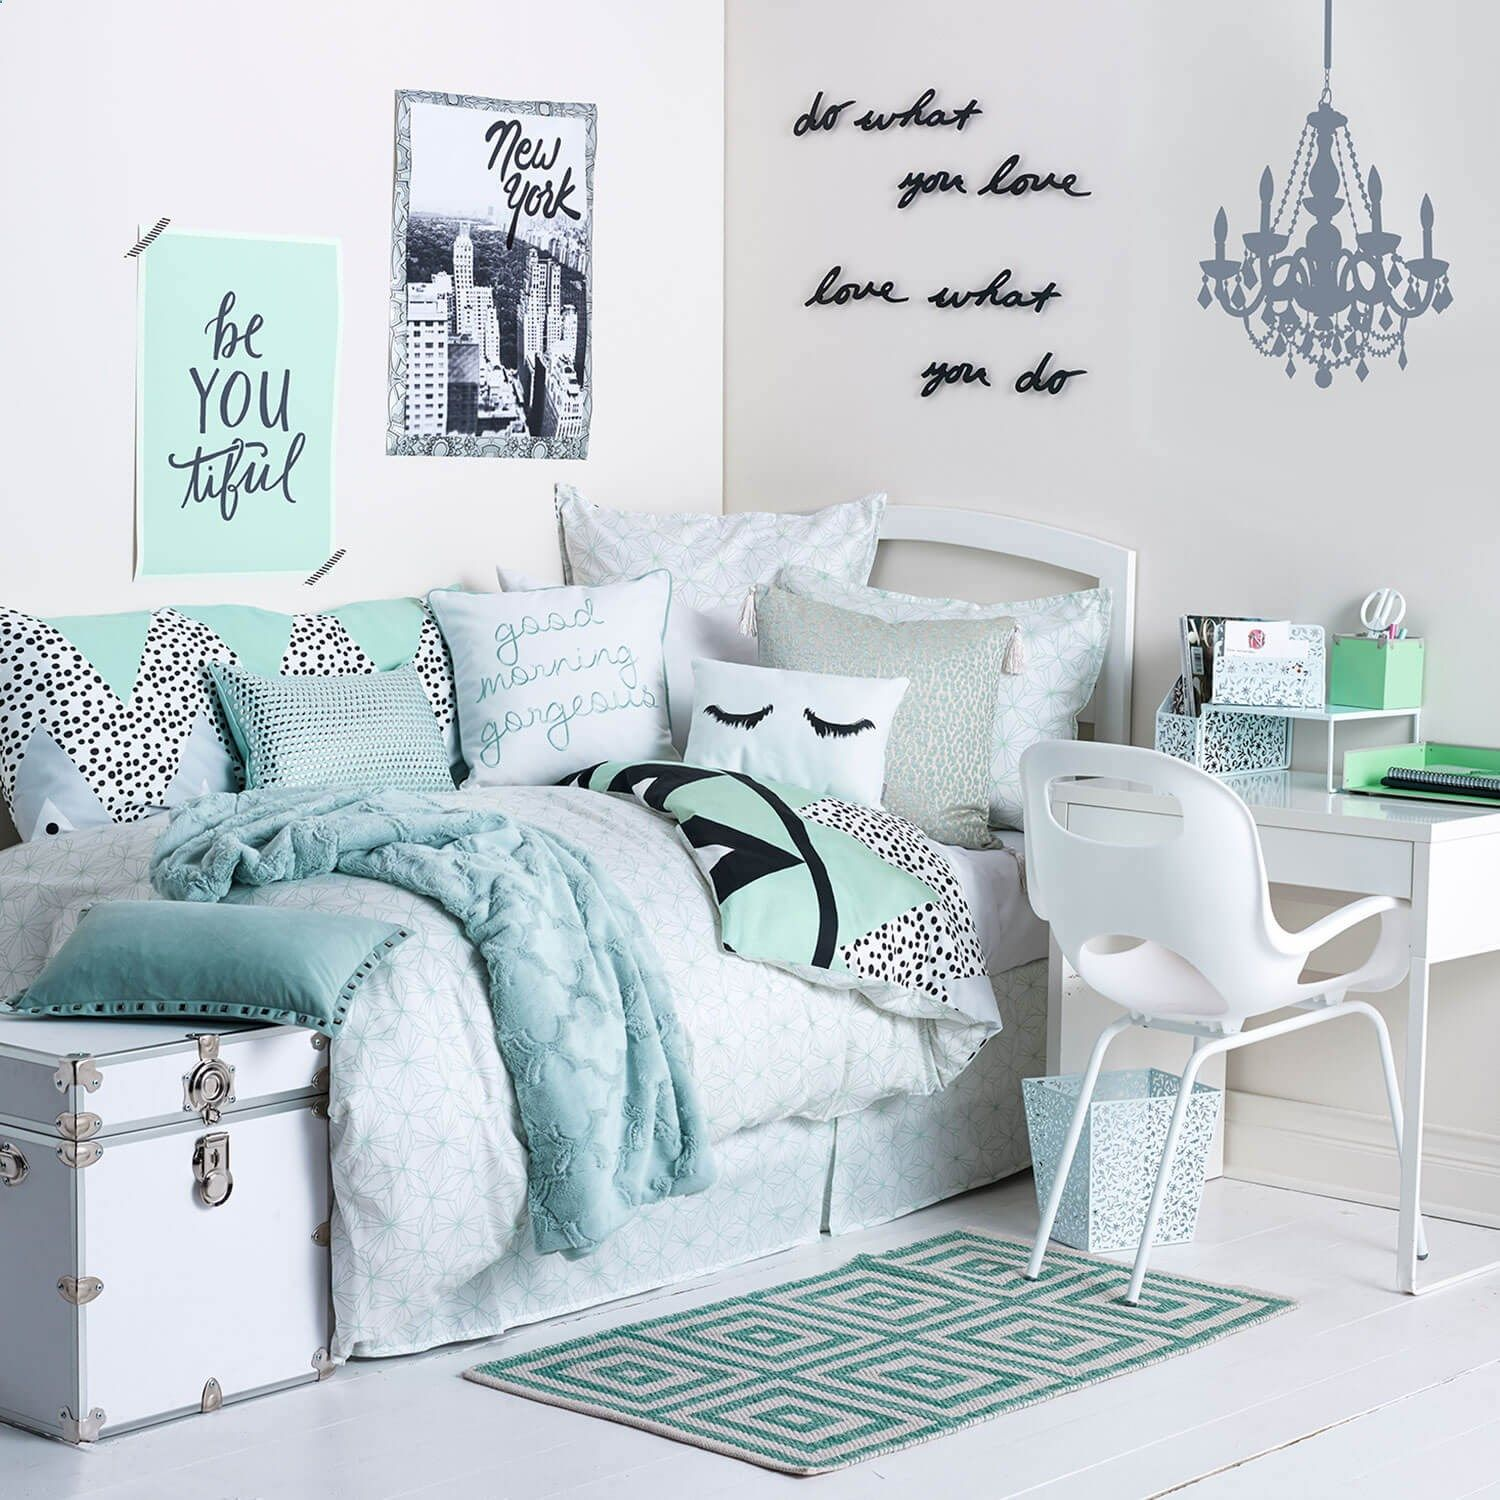 Uptown Girl Room - Available On Dormifycom